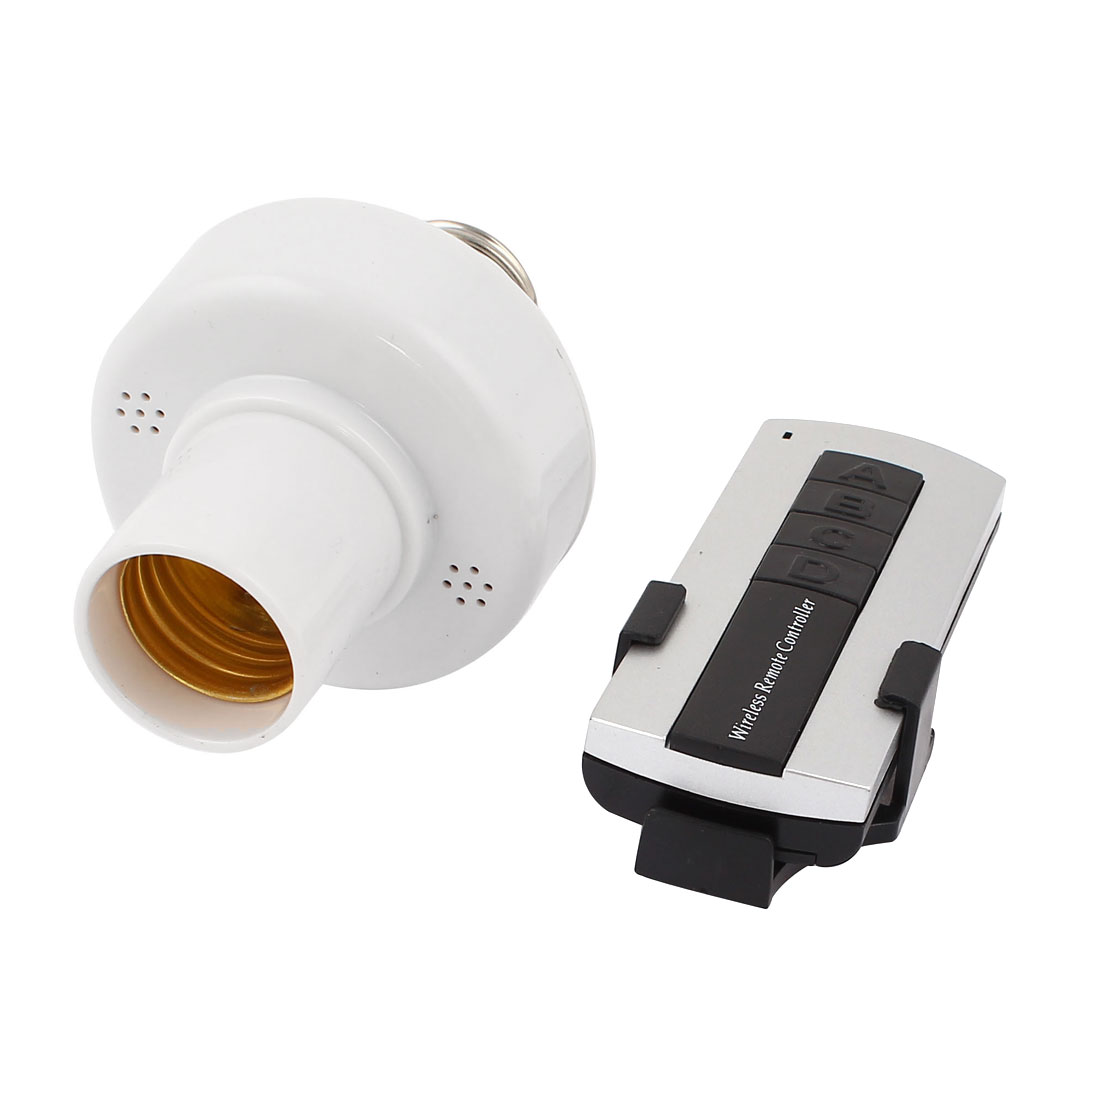 20M Distance Wireless Remote Control Switch E27 Light Lamp Bulb Base Socket